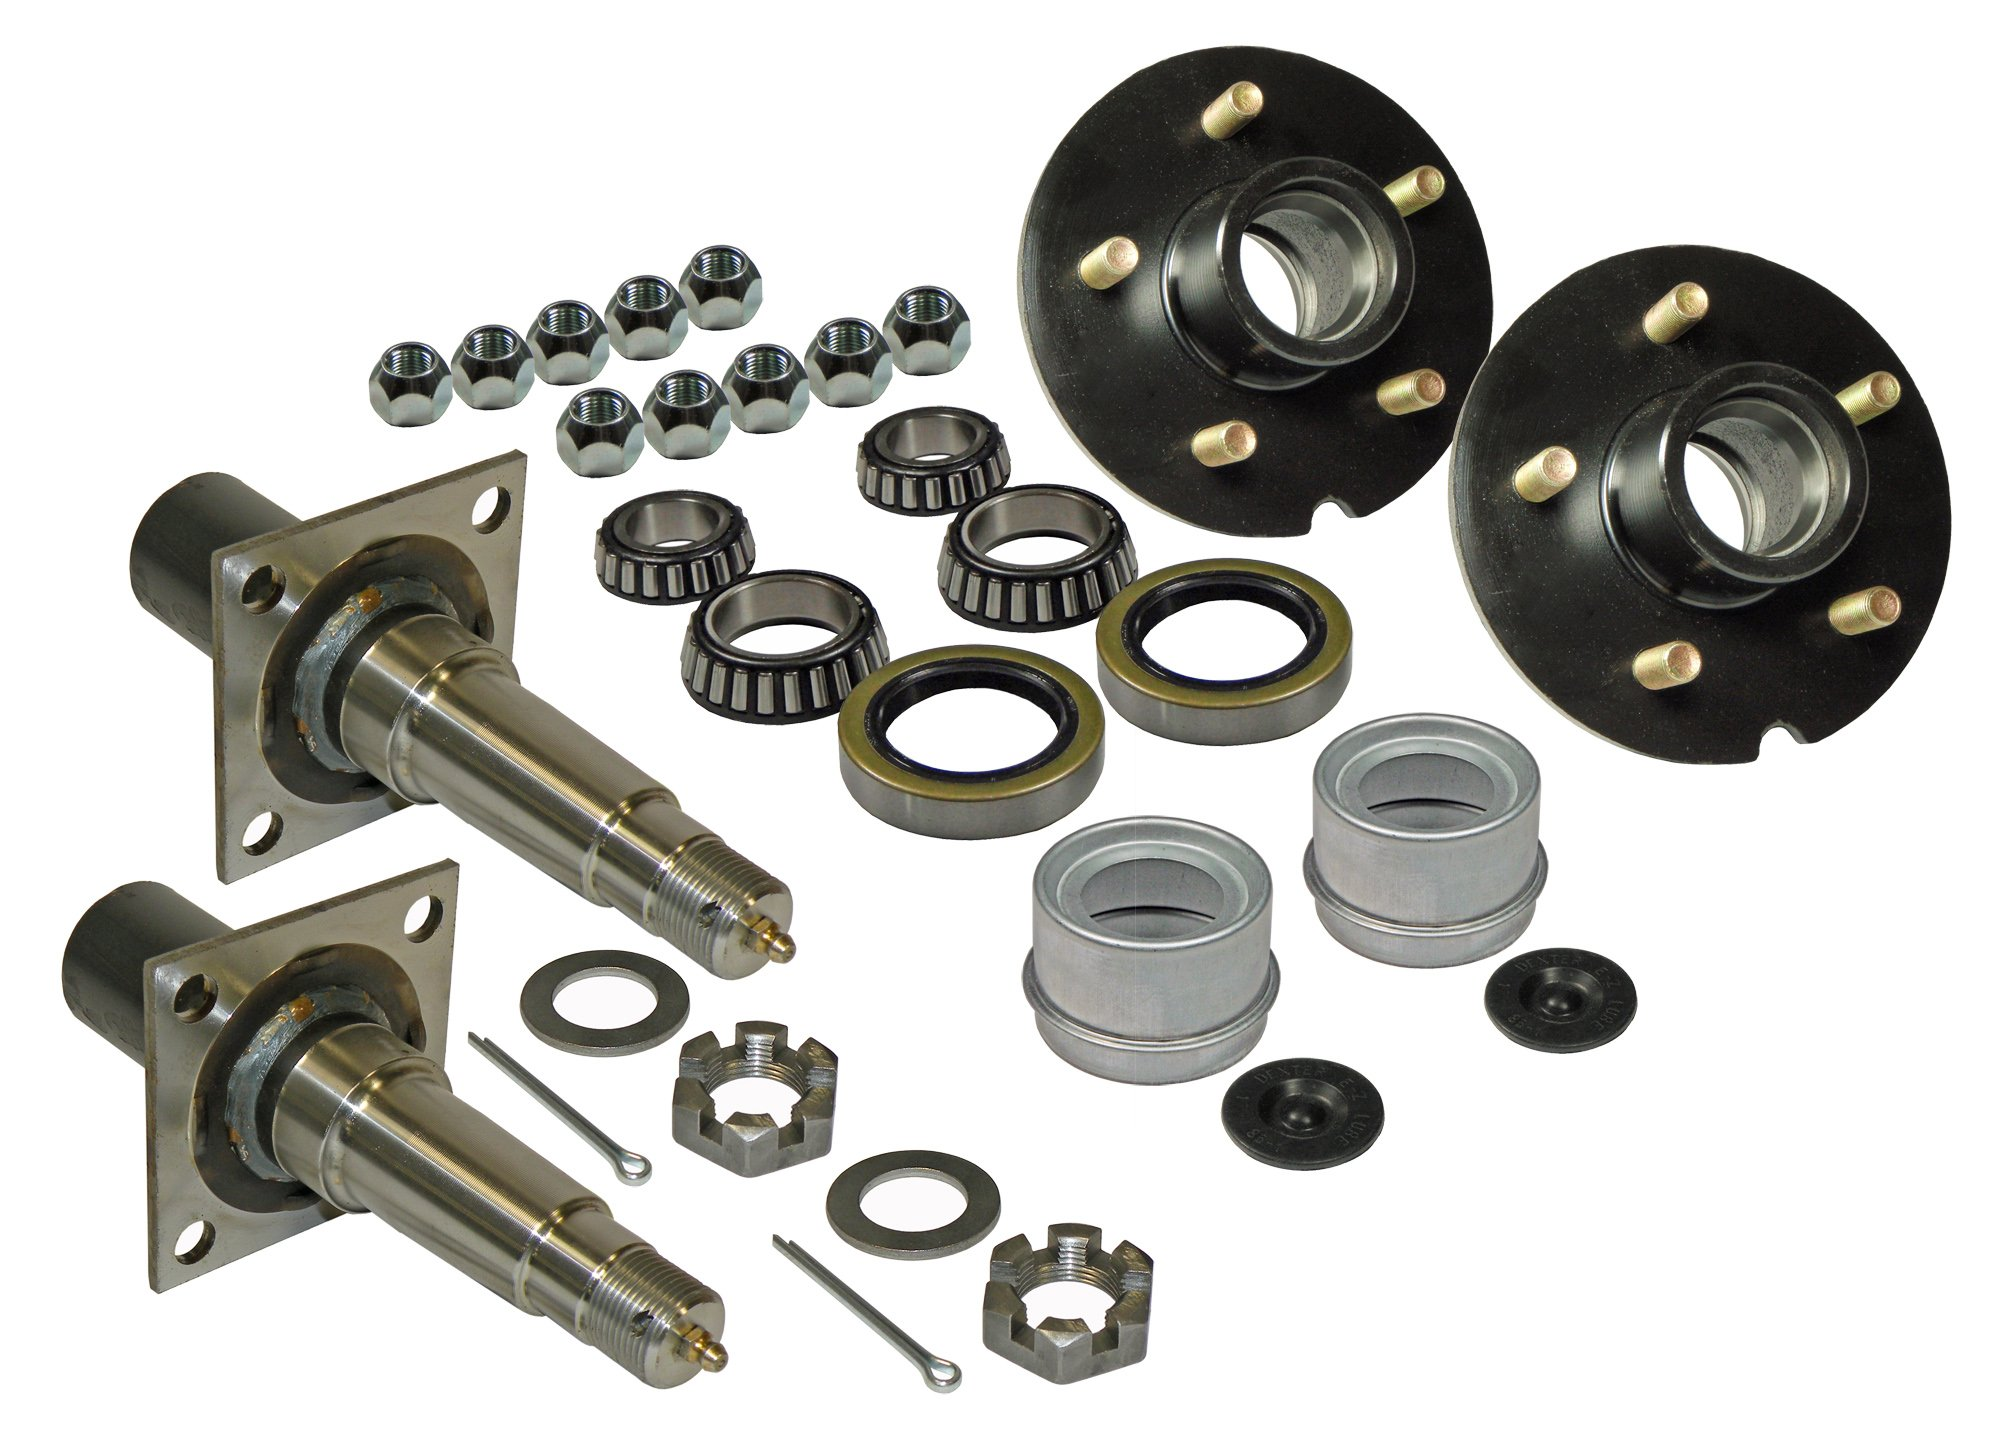 Rigid Hitch Pair of 5-Bolt on 4-1/2 Inch Hub Assembly (AKRD-3500545F) Includes (2) Flanged, 1-3/8 Inch to 1-1/16 Inch Tapered Spindles & Bearings by Rigid Hitch